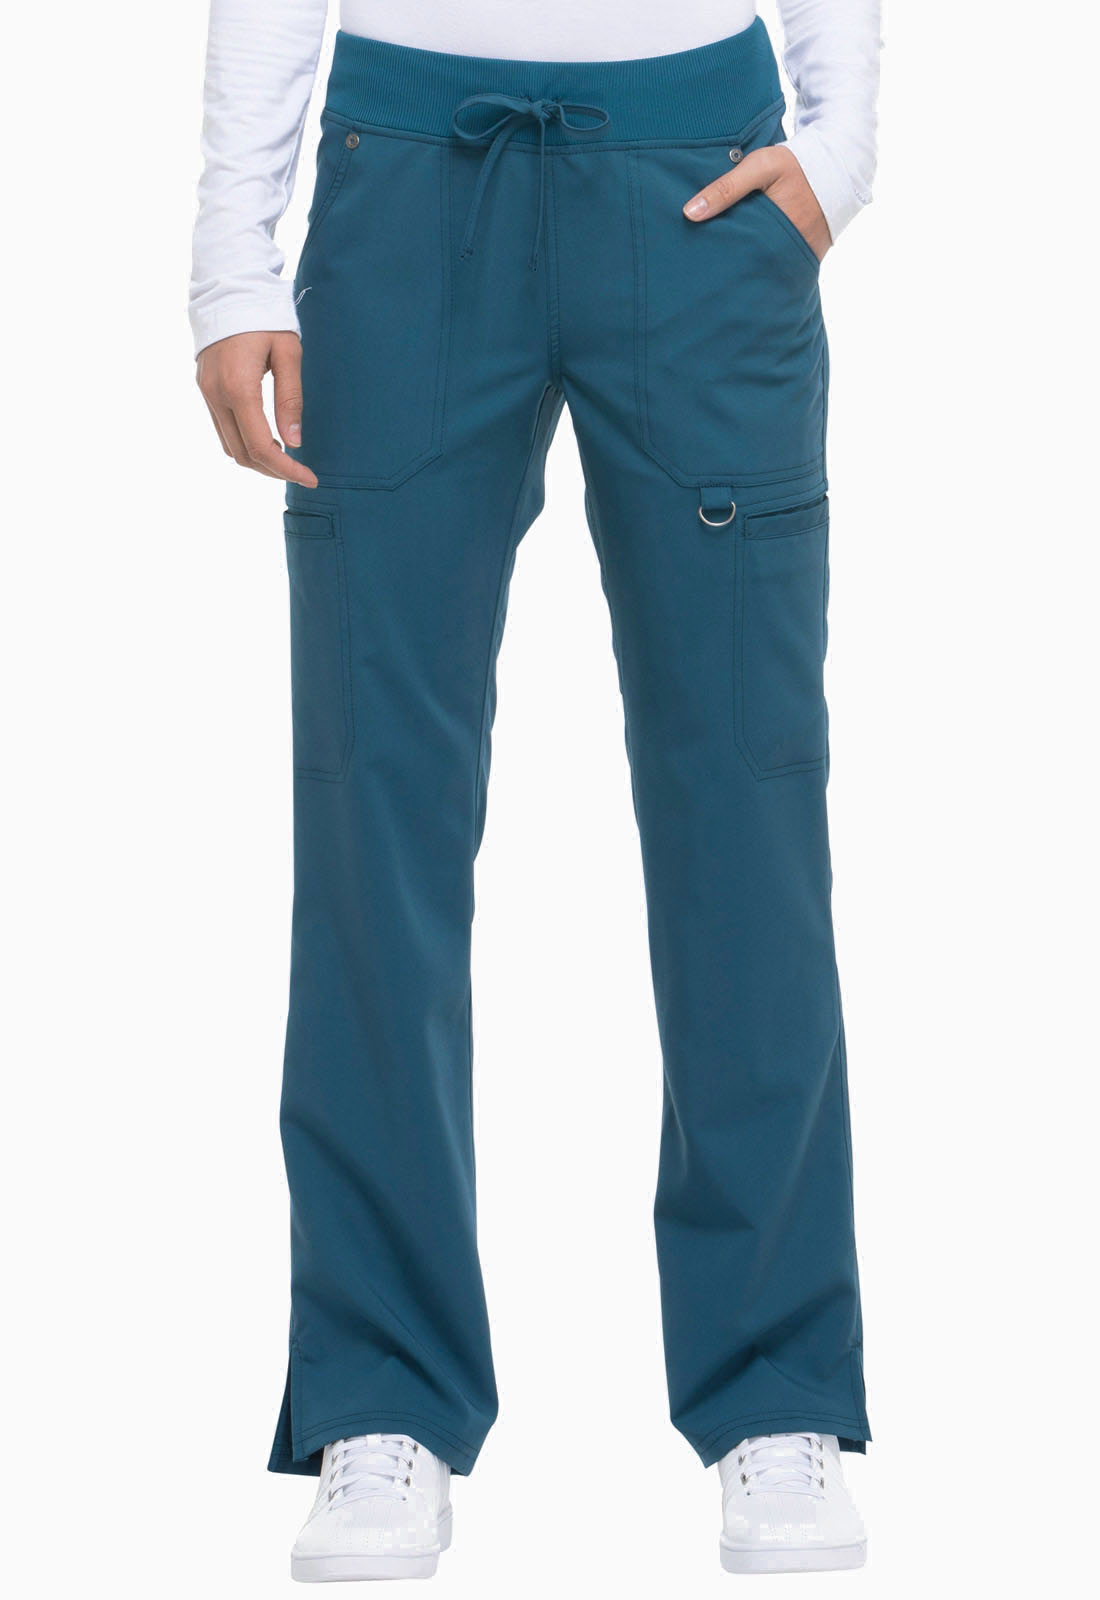 bc68665feb4 Dickies Xtreme Stretch Mid Rise Rib Knit Waistband Pant in Caribbean ...